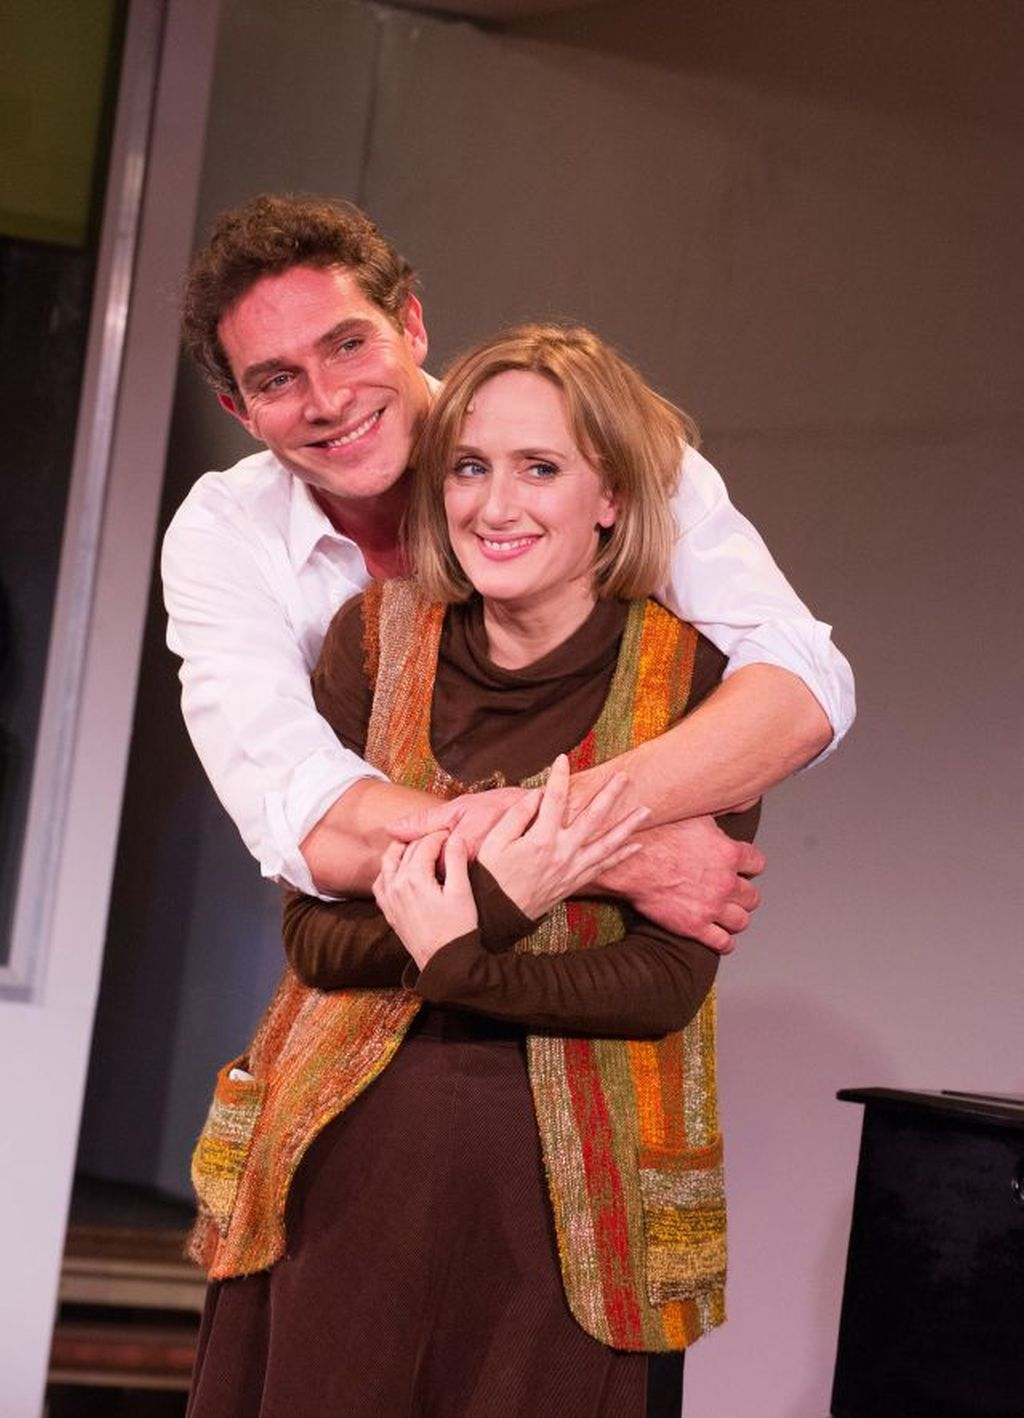 Mark Umbers and Jenna Russell in 'Merrily We Roll Along'